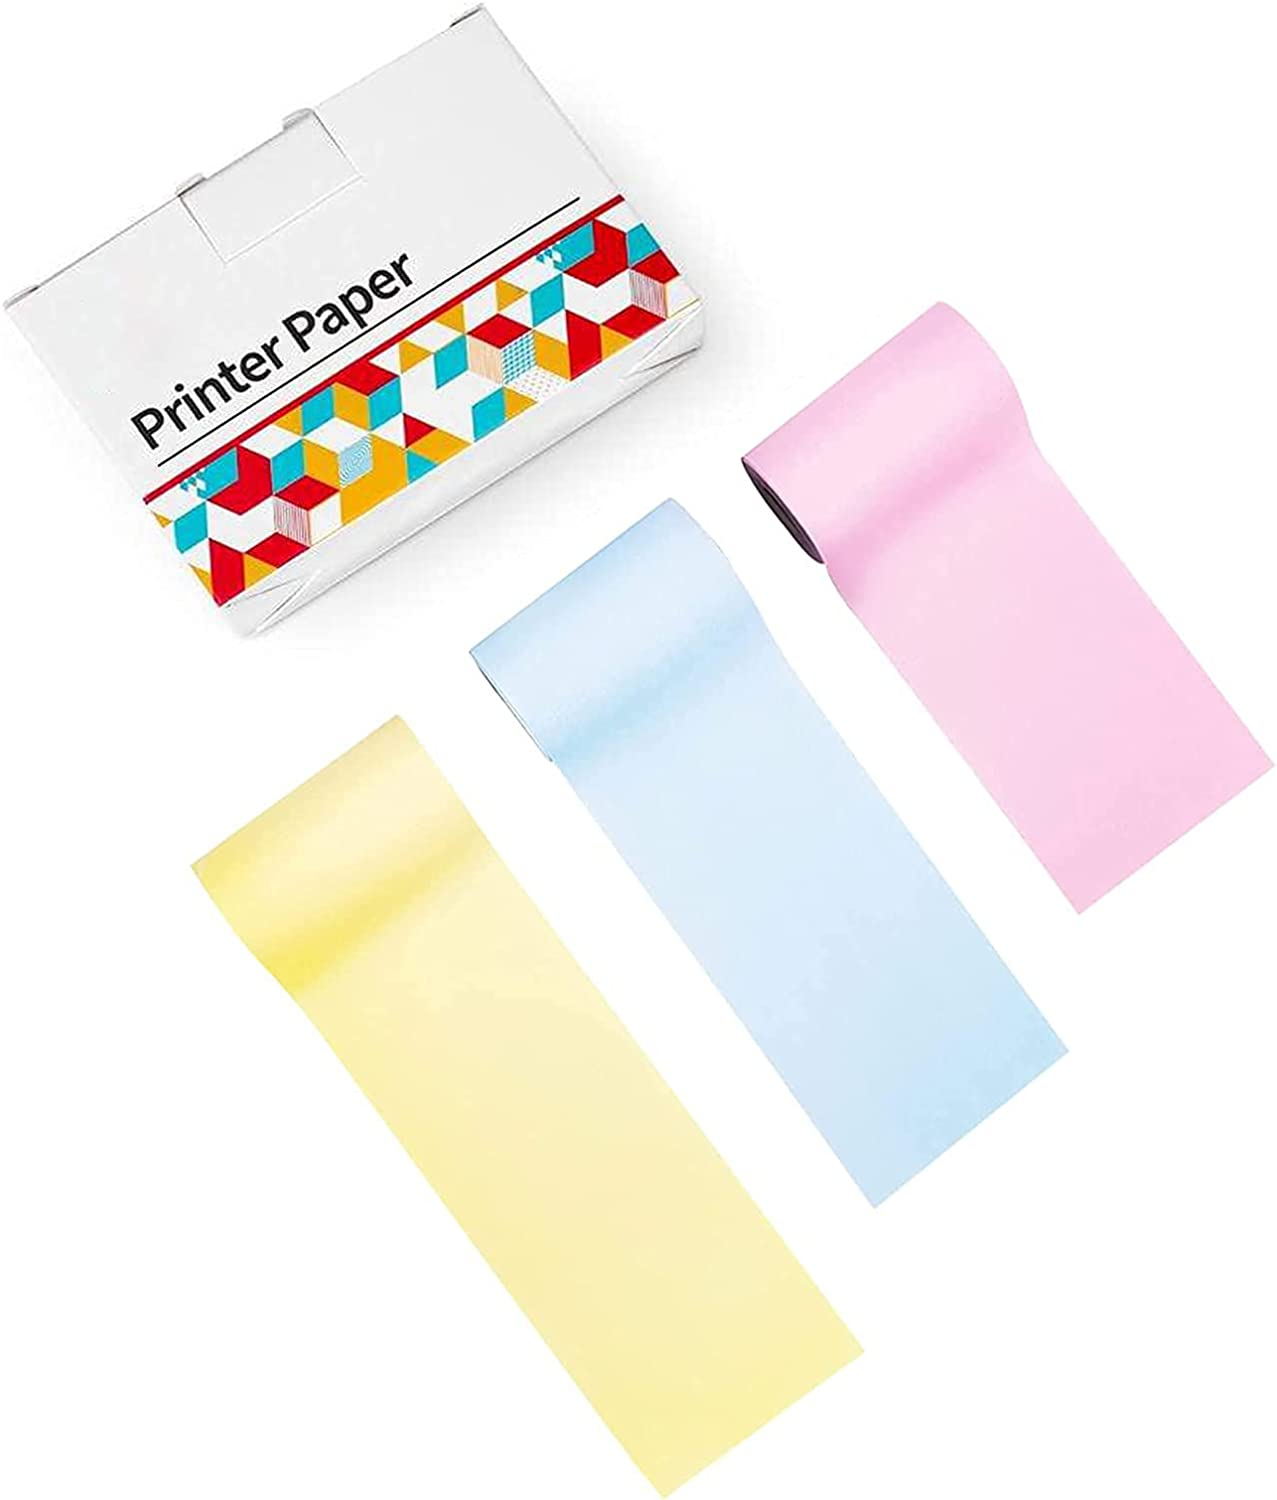 Memoking M02 Thermal Printer Paper - Compatible with Phomemo M02/M02S/M02PRO/M03 Printer - Yellow/Pink/Blue Thermal Labels, 53mm x 6.5m / 2.08in x 21.32ft, 3 Rolls